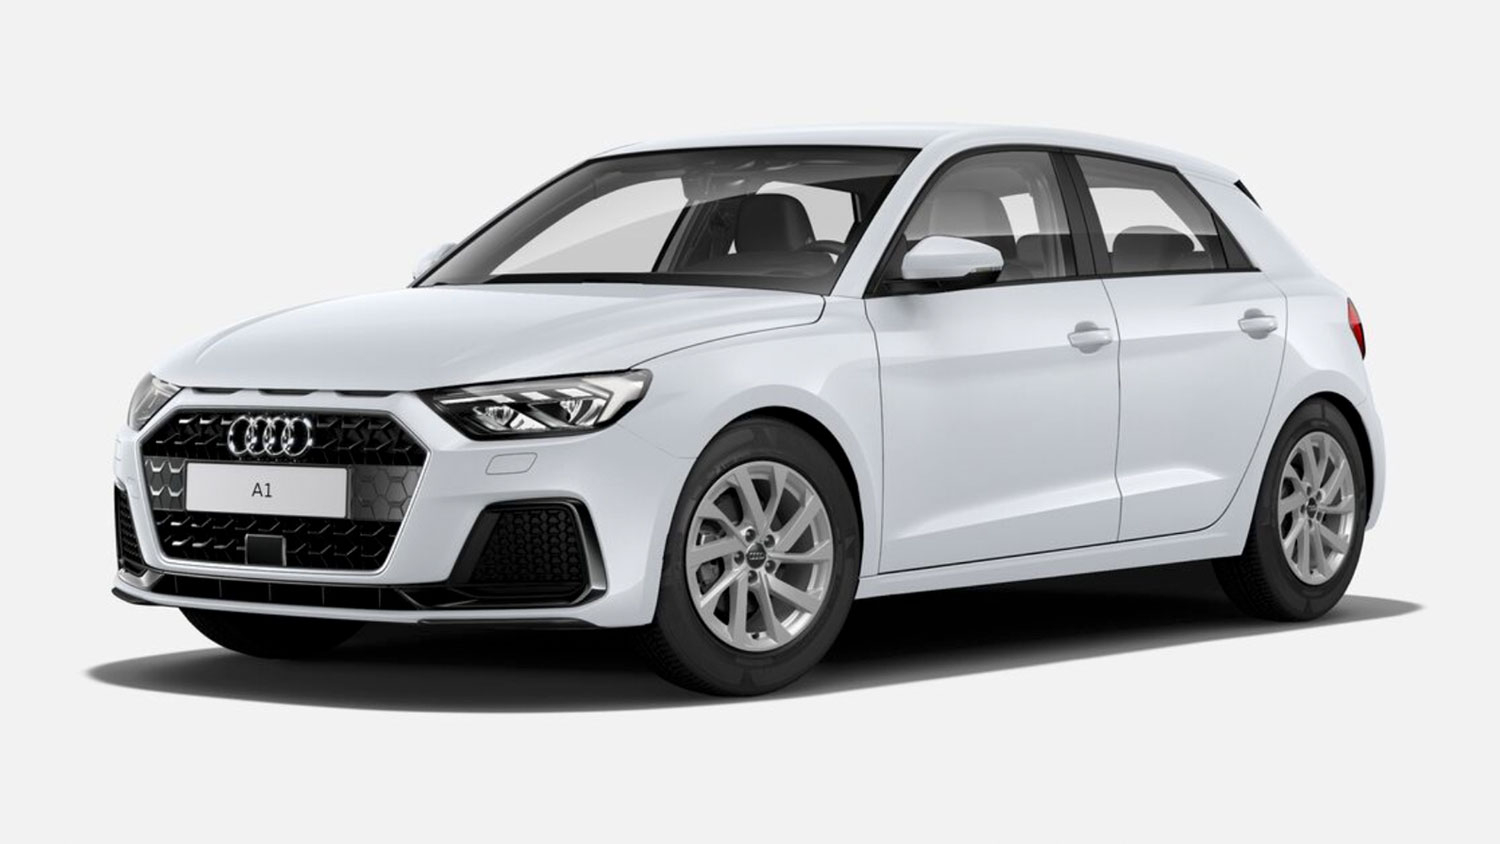 New Audi A1 30 Tfsi Citycarver 5dr S Tronic Petrol Hatchback For